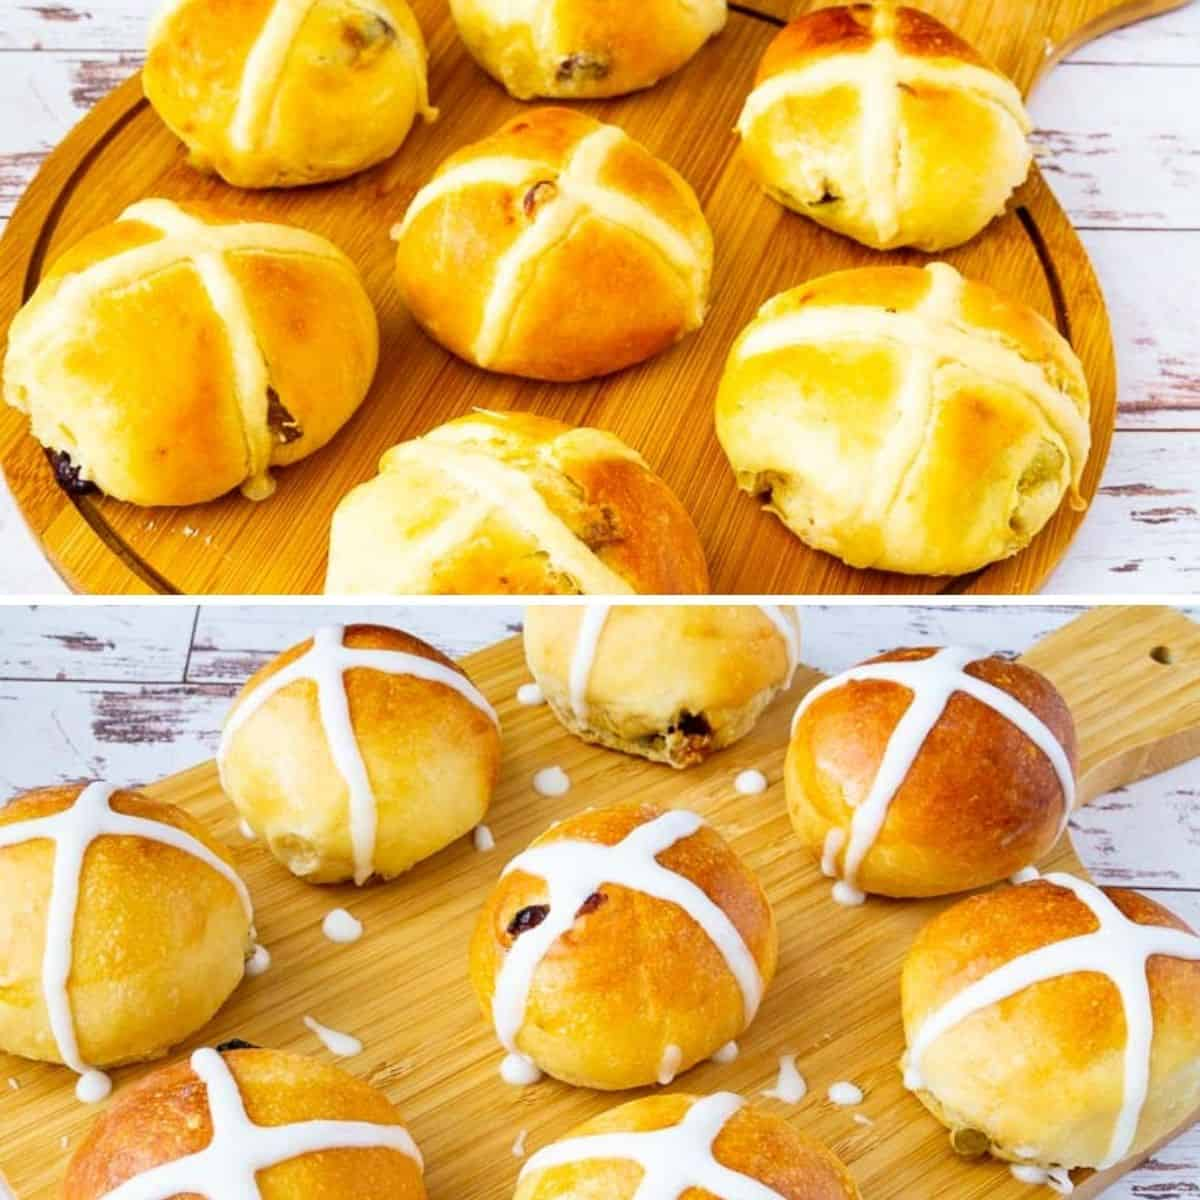 Hot cross buns both with flour cross or icing cross.